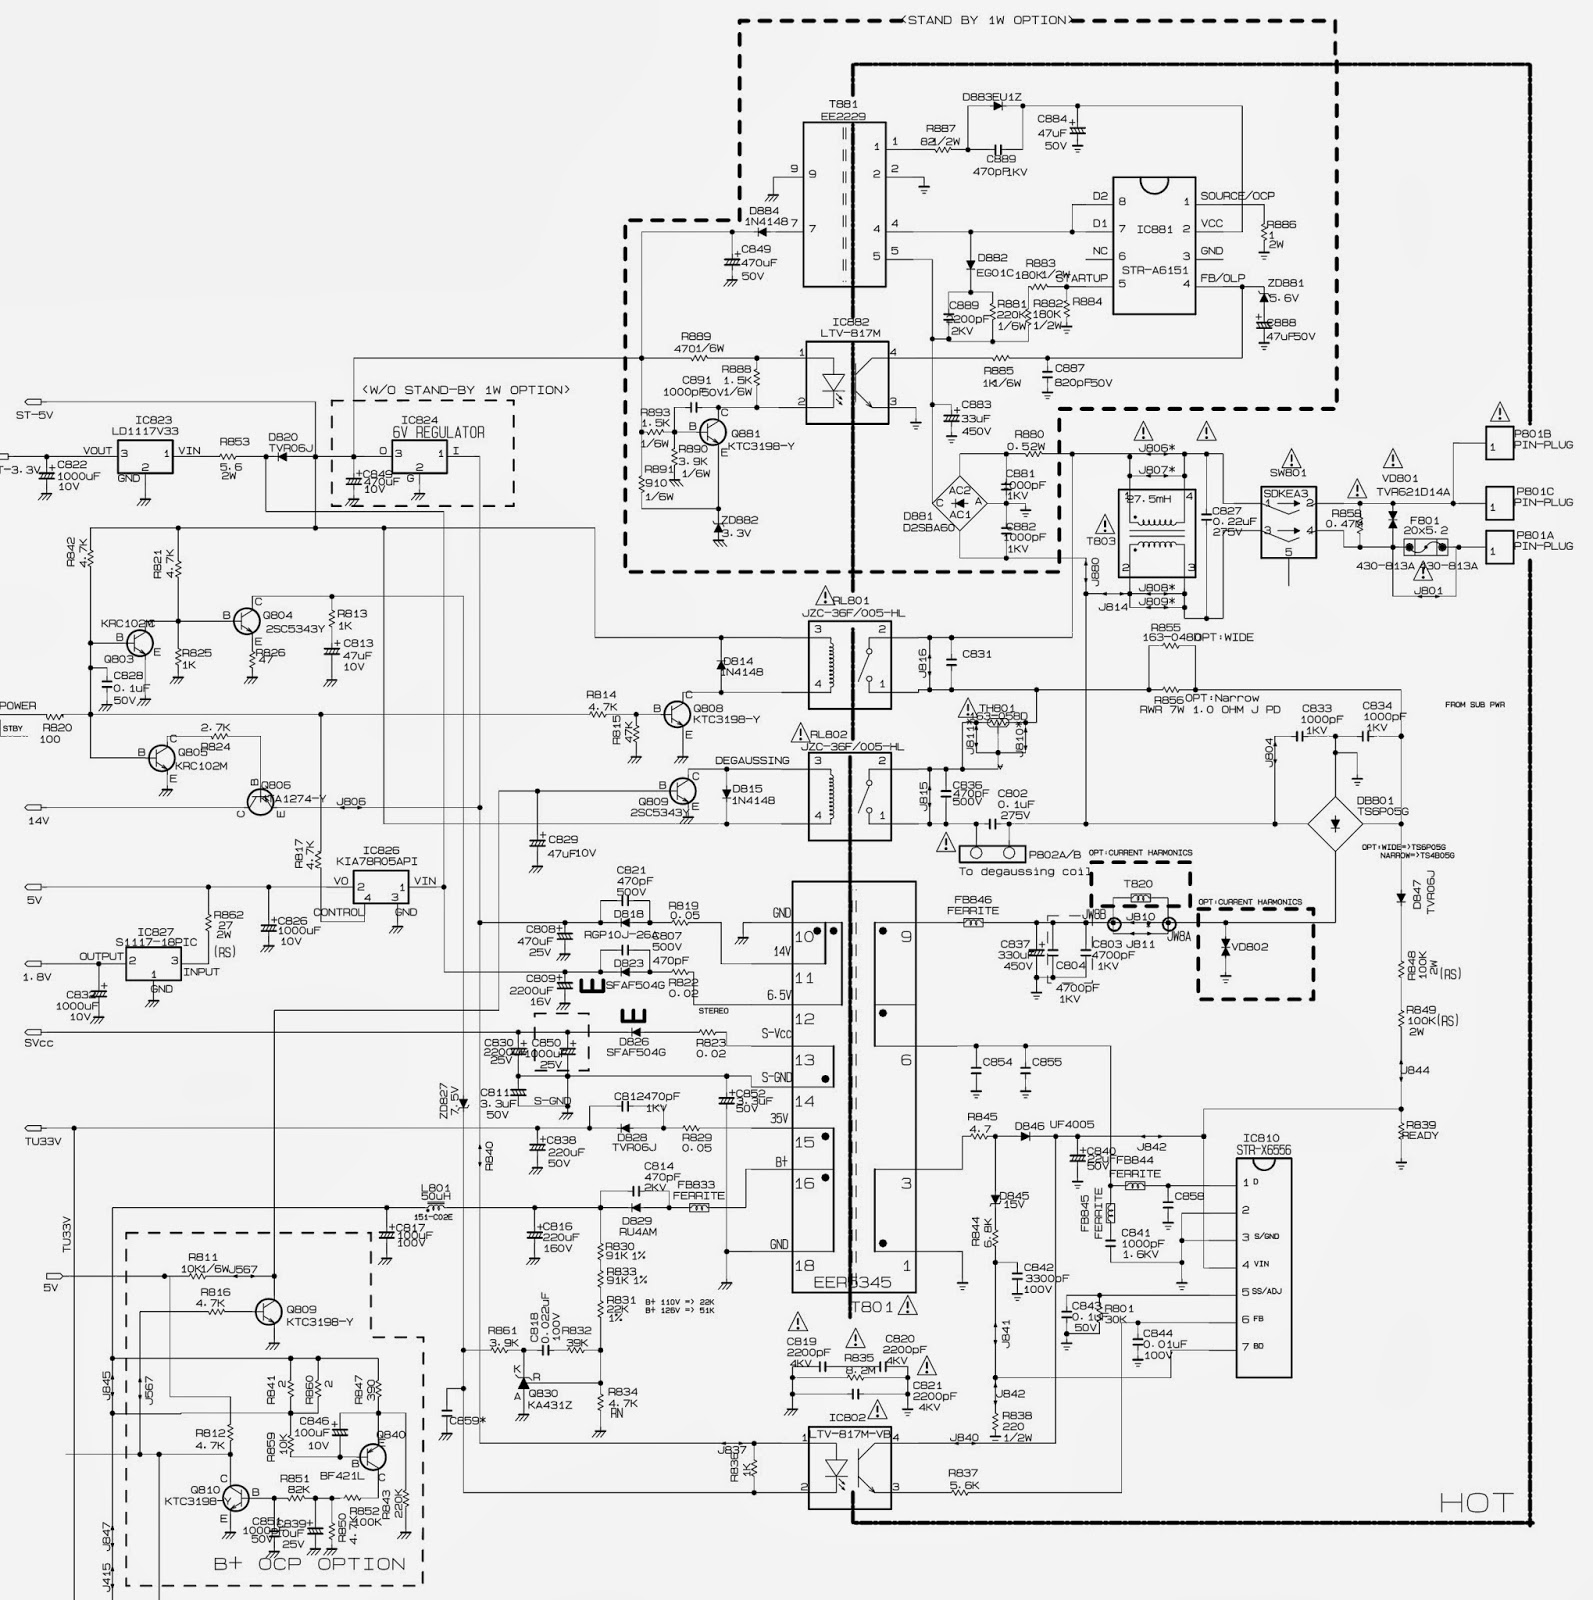 small resolution of str x 6556 based smps schematic circuit diagram